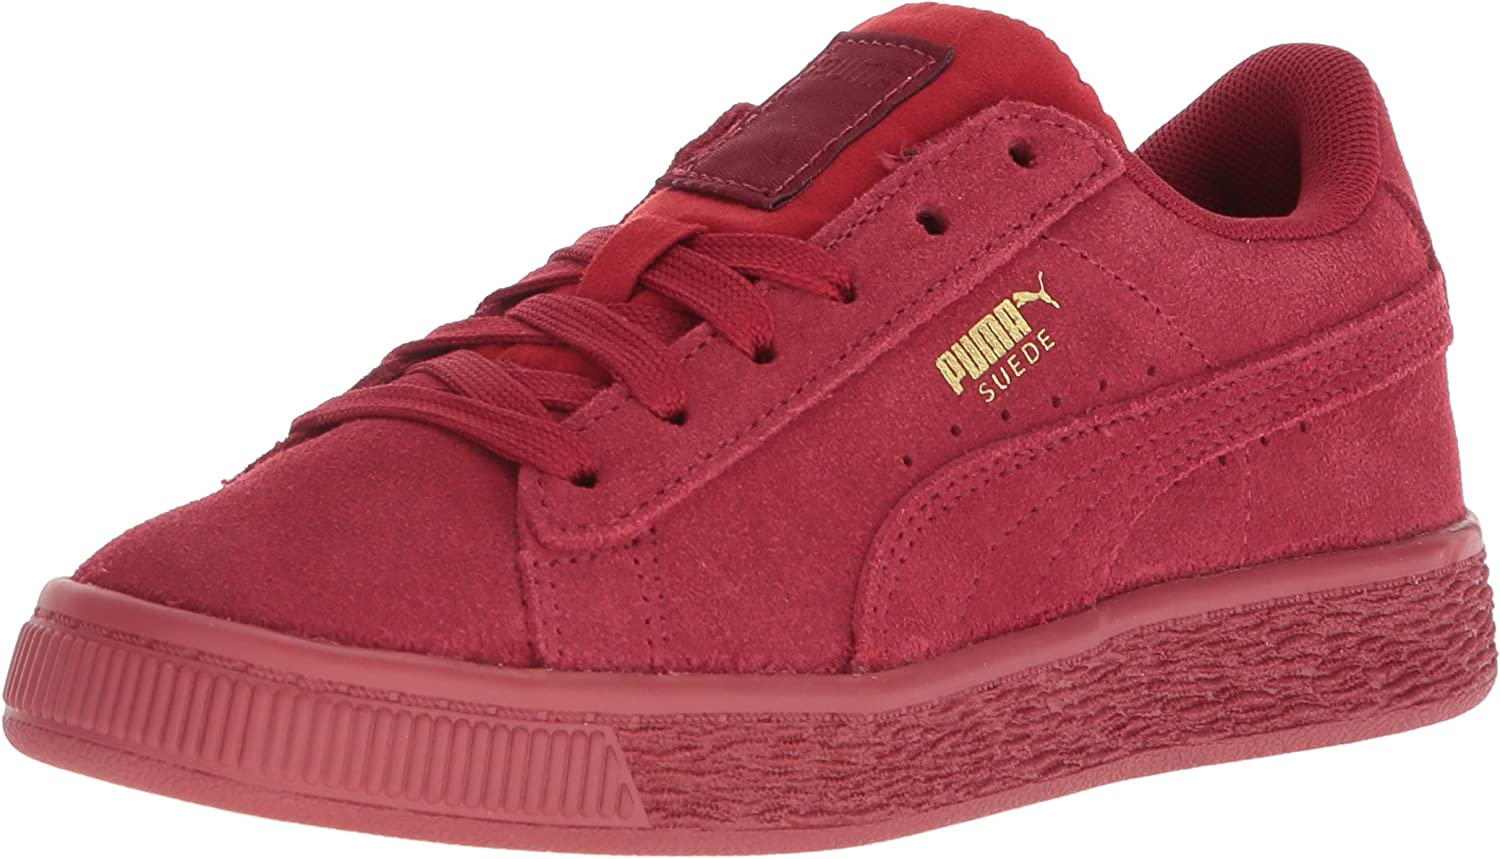 1 year warranty PUMA New Free Shipping Unisex-Child Suede Classic Sneaker